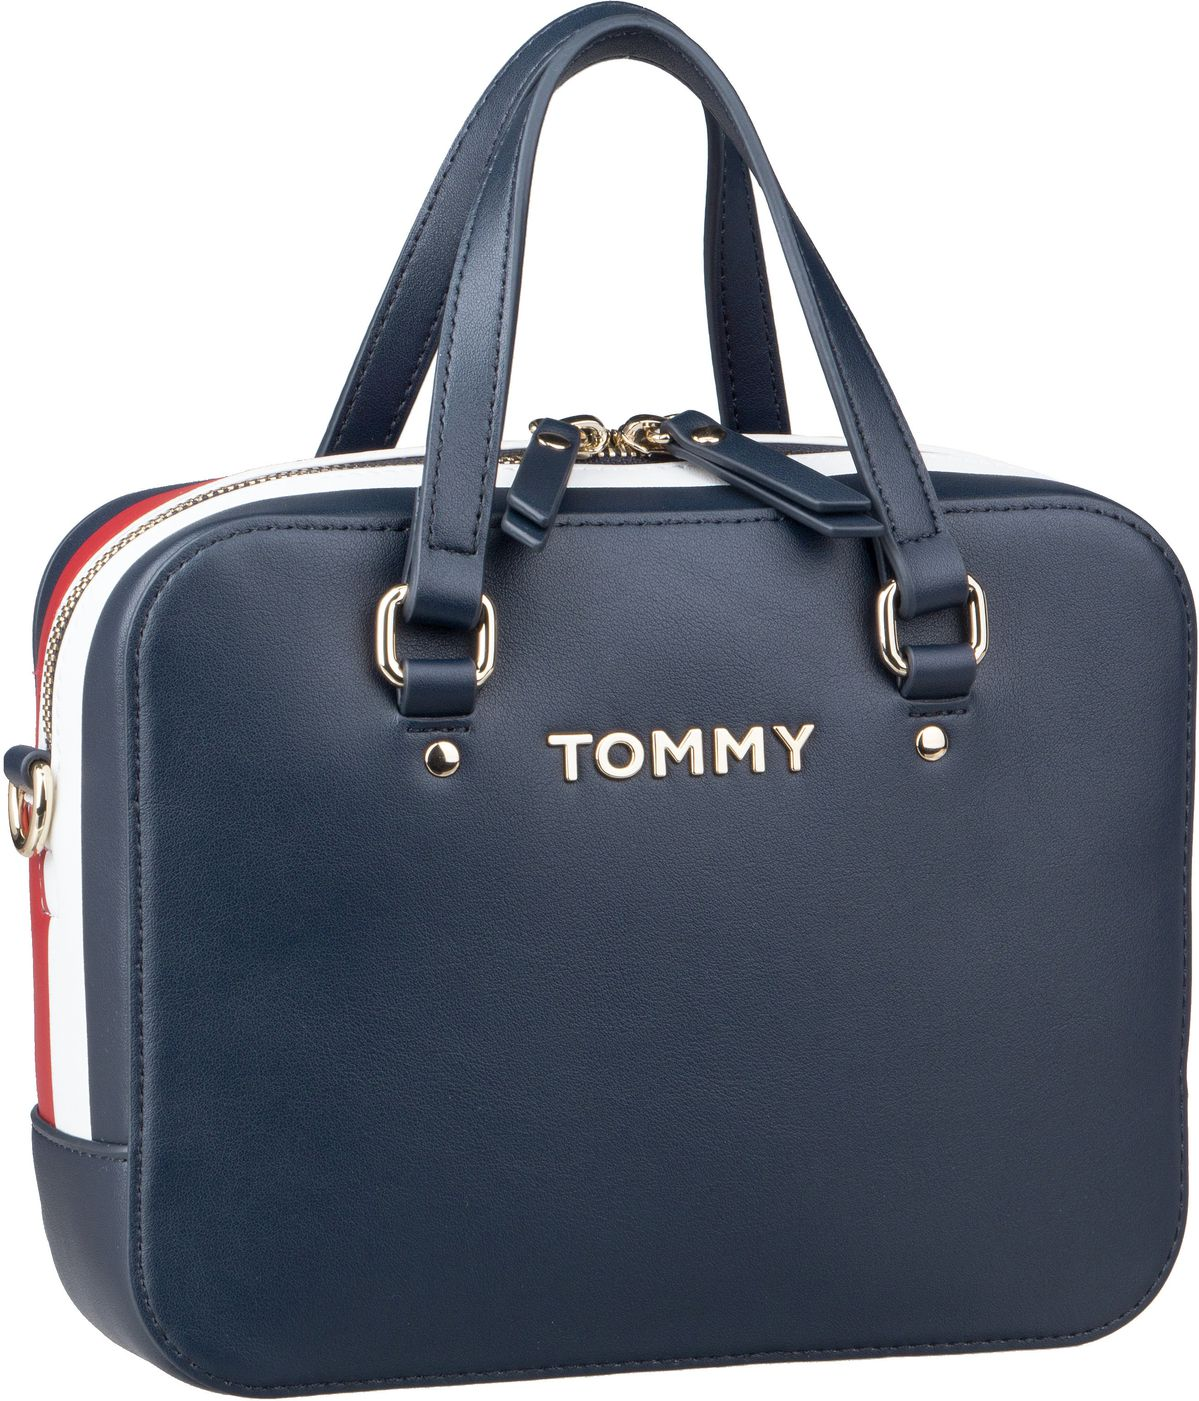 Handtasche TH Corporate Mini Trunk 6820 Tommy Navy